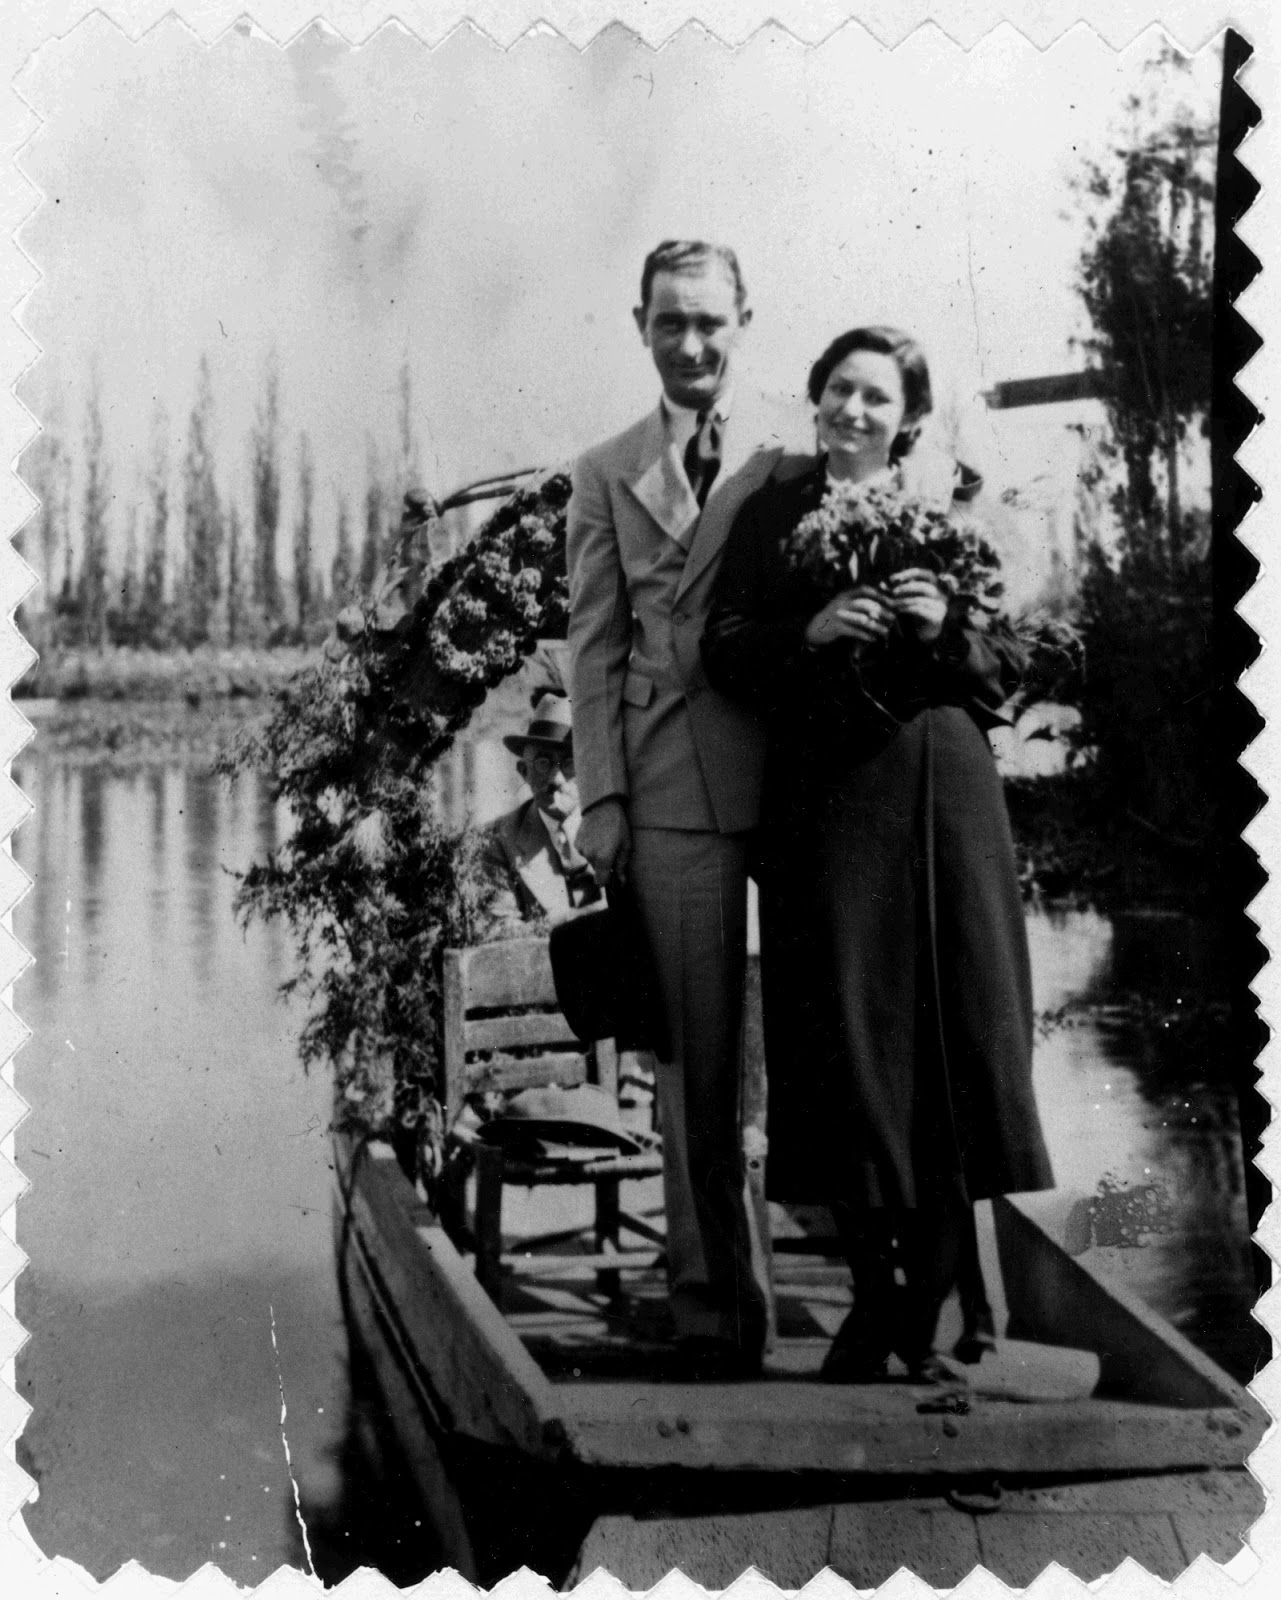 Lyndon and Lady Bird Johnson on their honeymoon. LBJ Library photo by Unknown, Nov. 1934